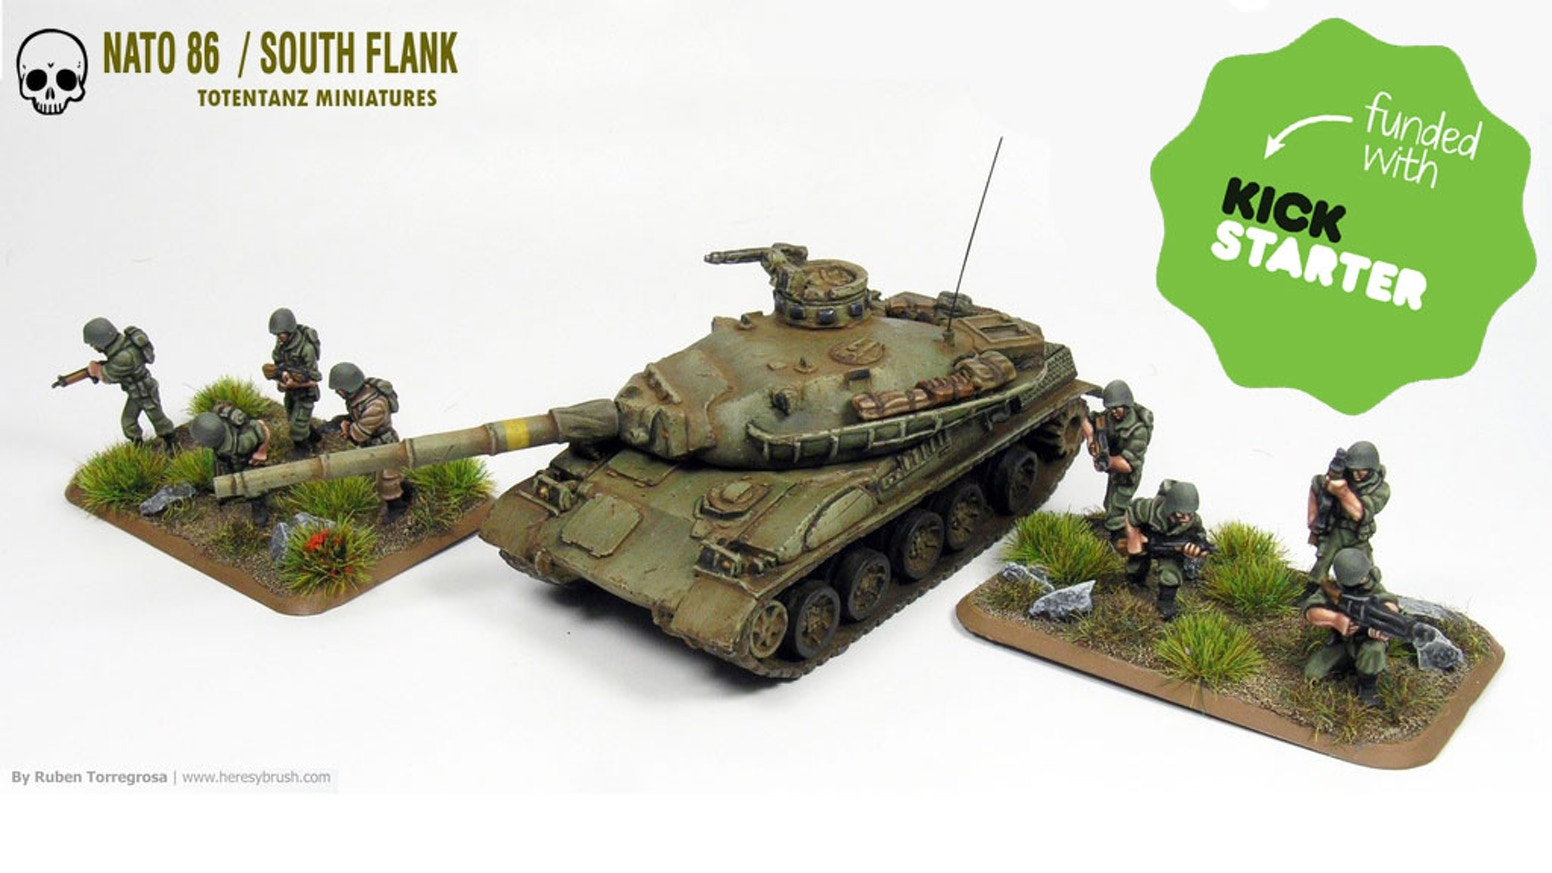 NATO 86 is a new range of 15mm miniatures for a Cold War gone Hot scenario involving the Spanish, French and Italian  Armies of the 80s